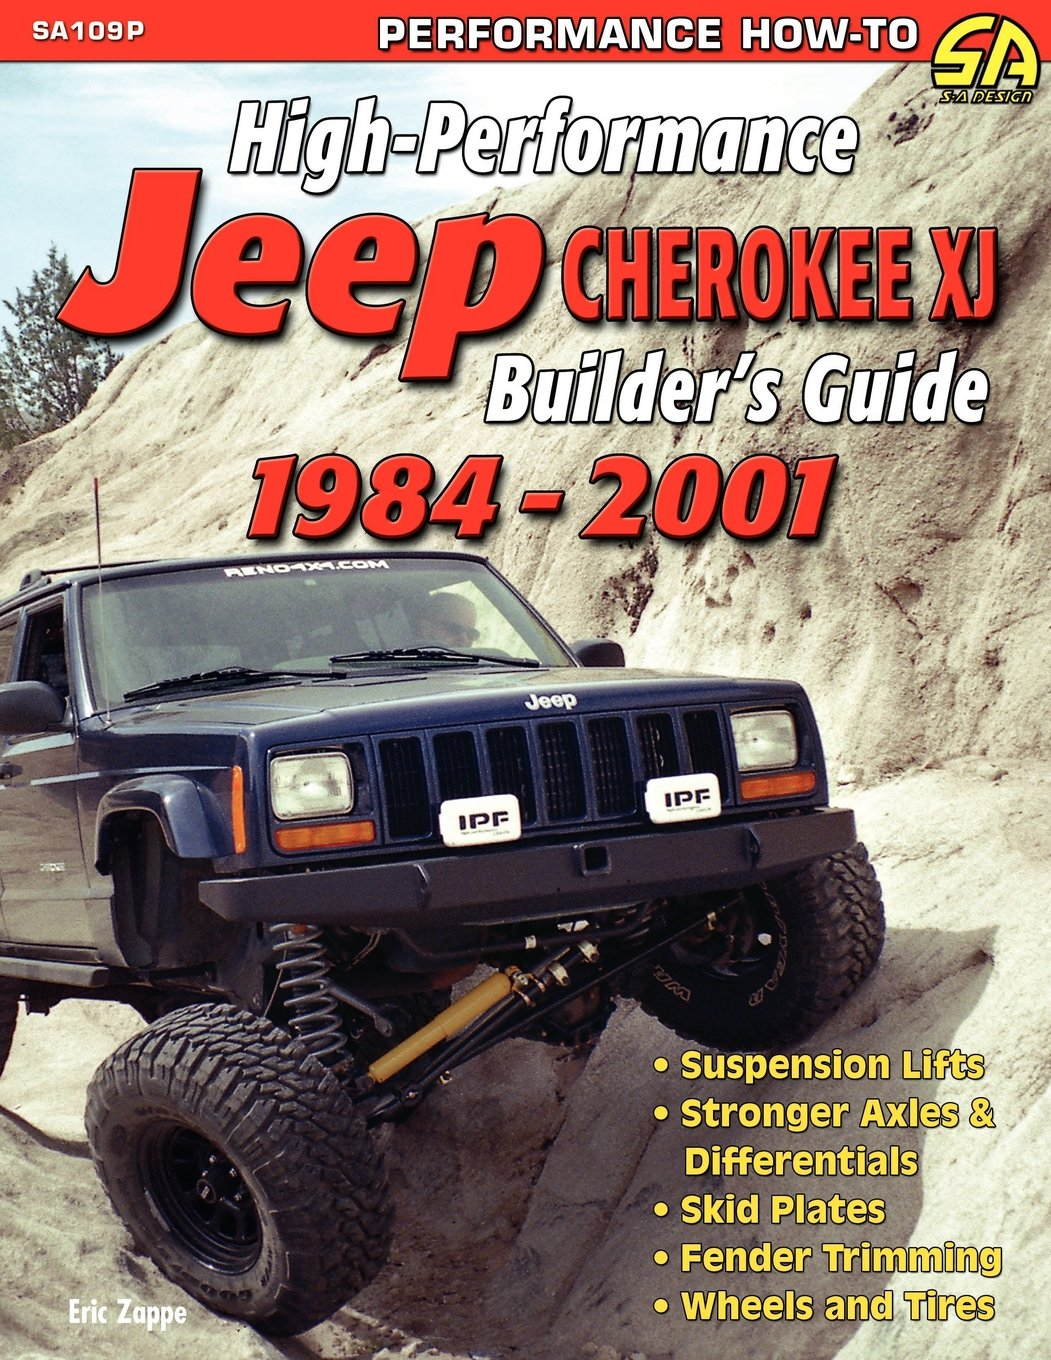 High-Performance Jeep Cherokee Xj Builder's Guide 1984-2001: Eric Zappe:  9781613250655: Amazon.com: Books